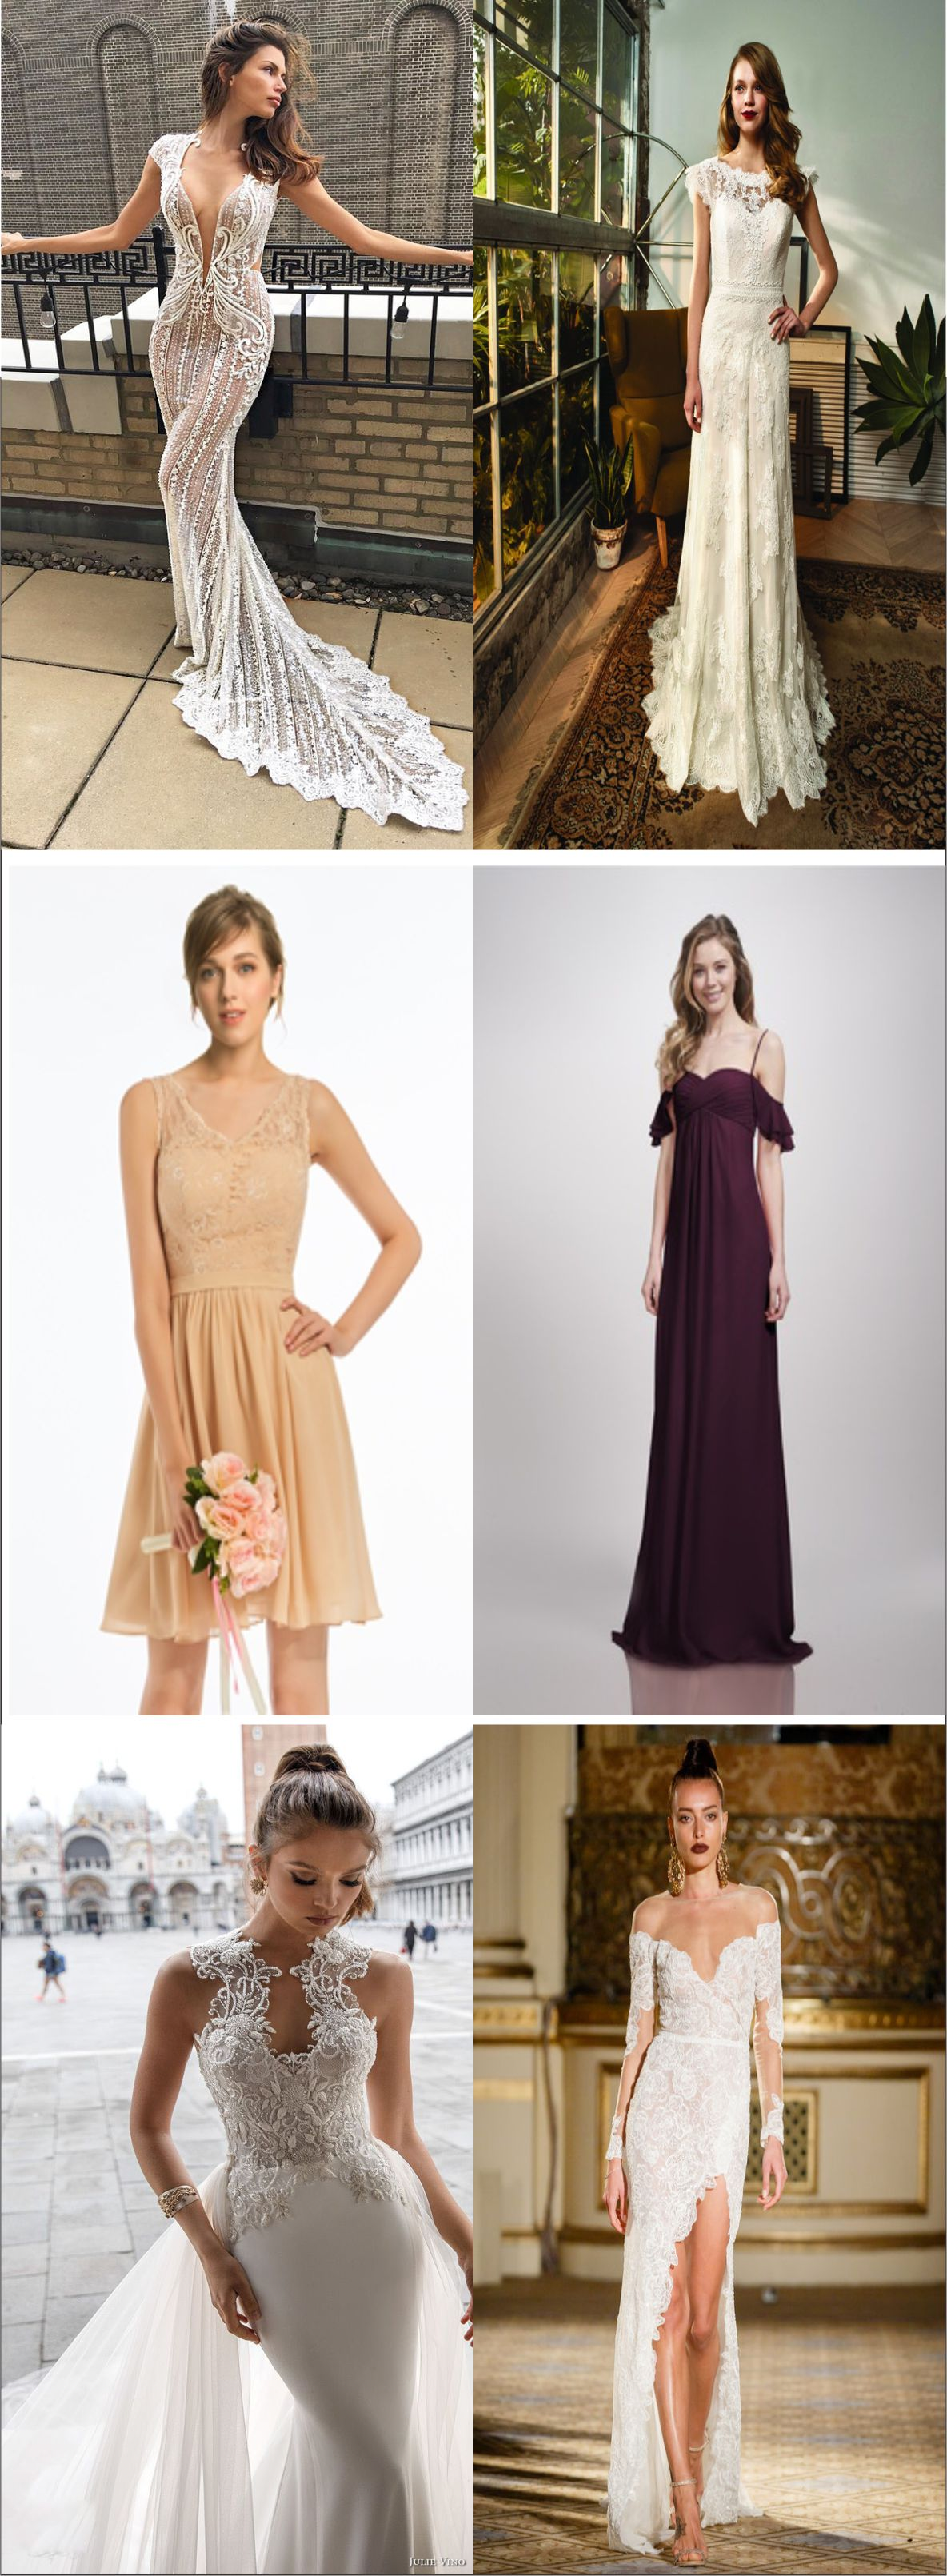 New Beautiful bridesmaid dresses 2018